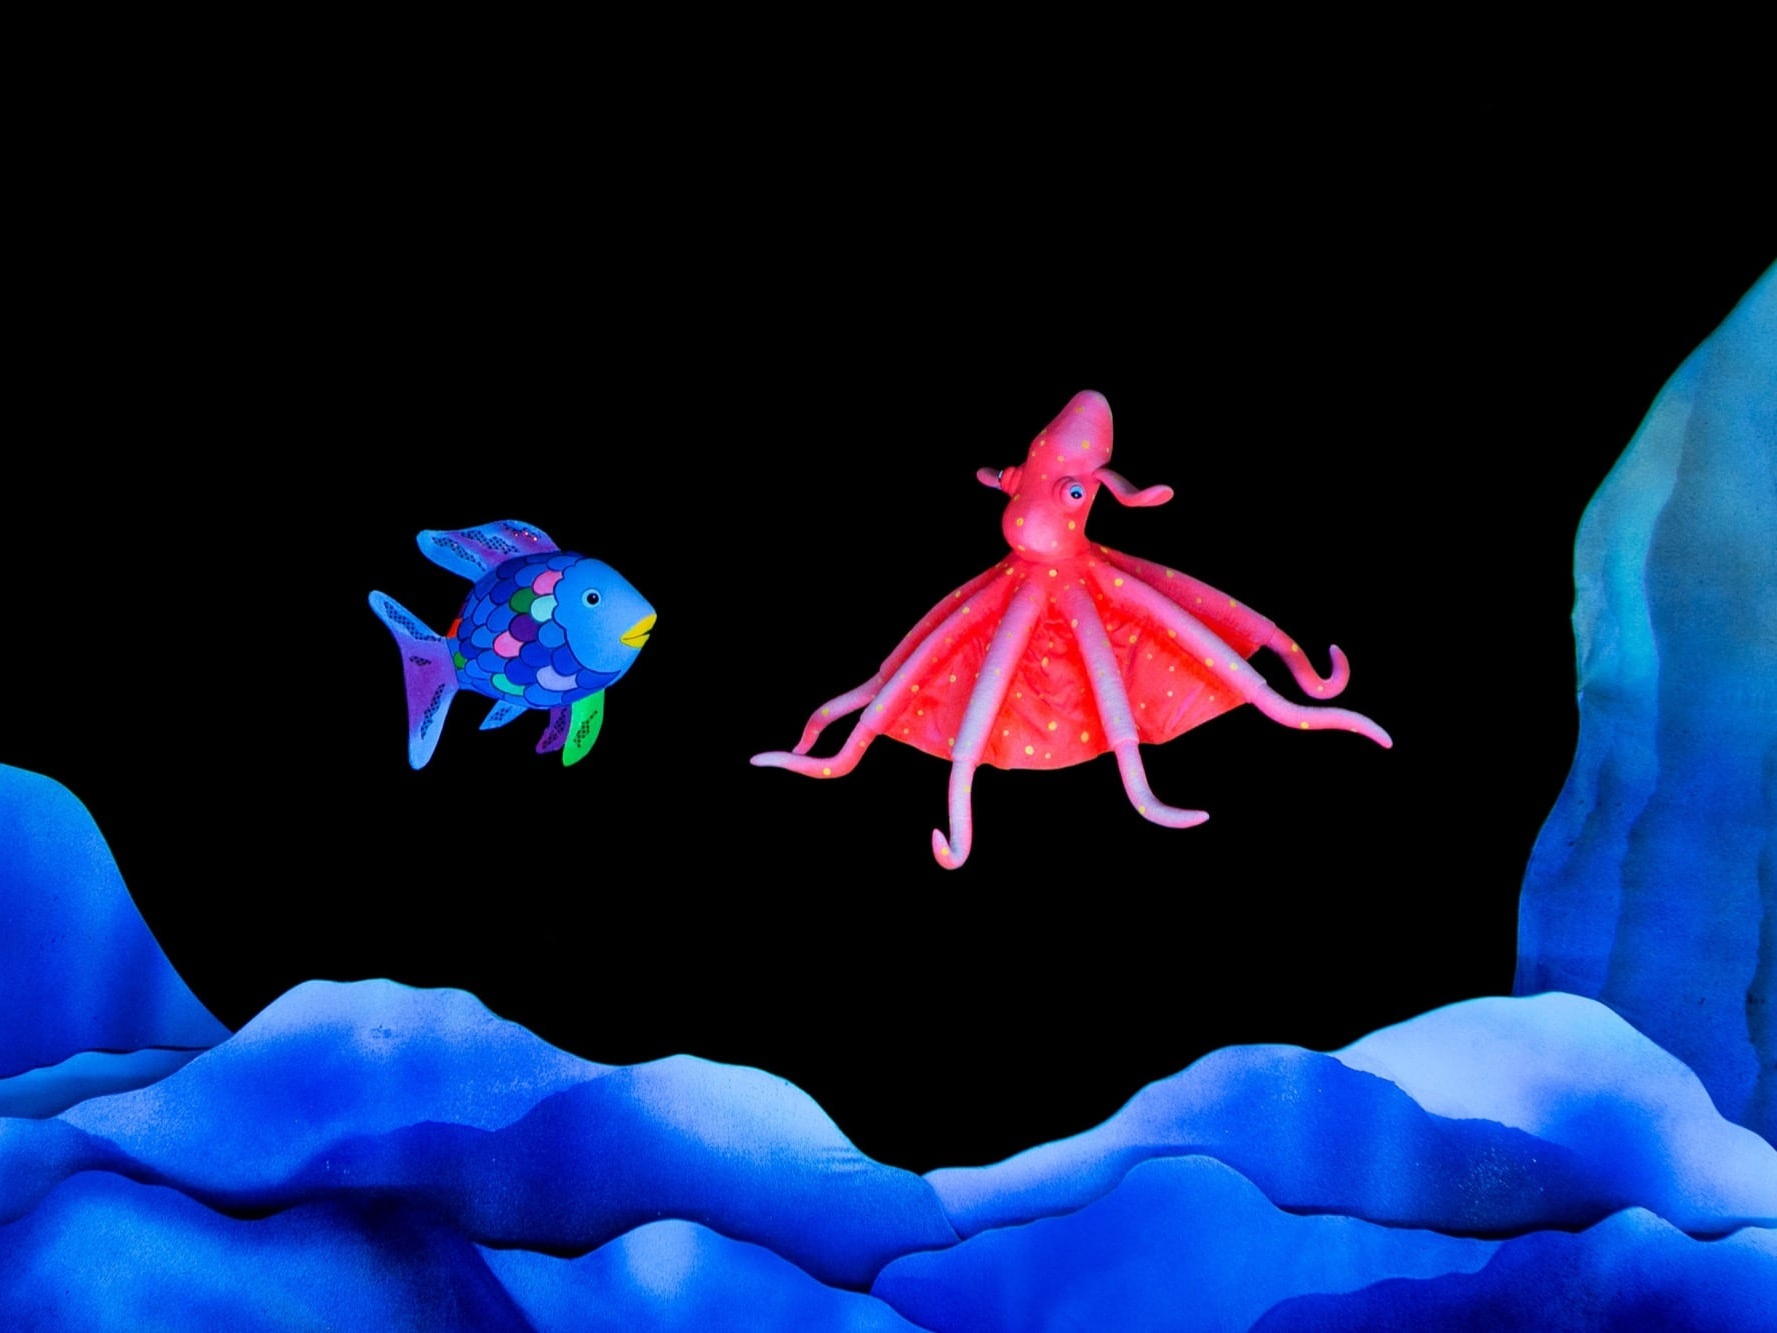 "The Rainbow FishMermaid Theatre of Nova Scotia - September 28, 2019 - 3pmAn original stage adaptation of Marcus Pfister's award-winning colourful story, The Rainbow Fish, and its companion tales, Rainbow Fish Discovers the Deep Sea and Opposites, this delightful production tells the tale of a lonely fish who doesn't want to share his most prized possession – his magnificent shiny scales.After taking the advice of a clever octopus, the fish begins to give away his much envied scales. Along the way, he finds courage to explore the great unknown deep sea, discovering a new world with wonderful sights and sounds and friendly creatures of all shapes, sizes, and colors.The story, brought to life through innovative puppetry, striking scenic effects, and evocative original music, will enchant even the youngest child as themes of opposites, friendship, responsible decision making, and relationship skills are examined.""The Mermaid Theatre puppeteers have truly mastered their puppets. If you're interested in a stunning visual performance, this is certainly a show you'll want to see."" – Jasmine Roy, St. Albert Today"